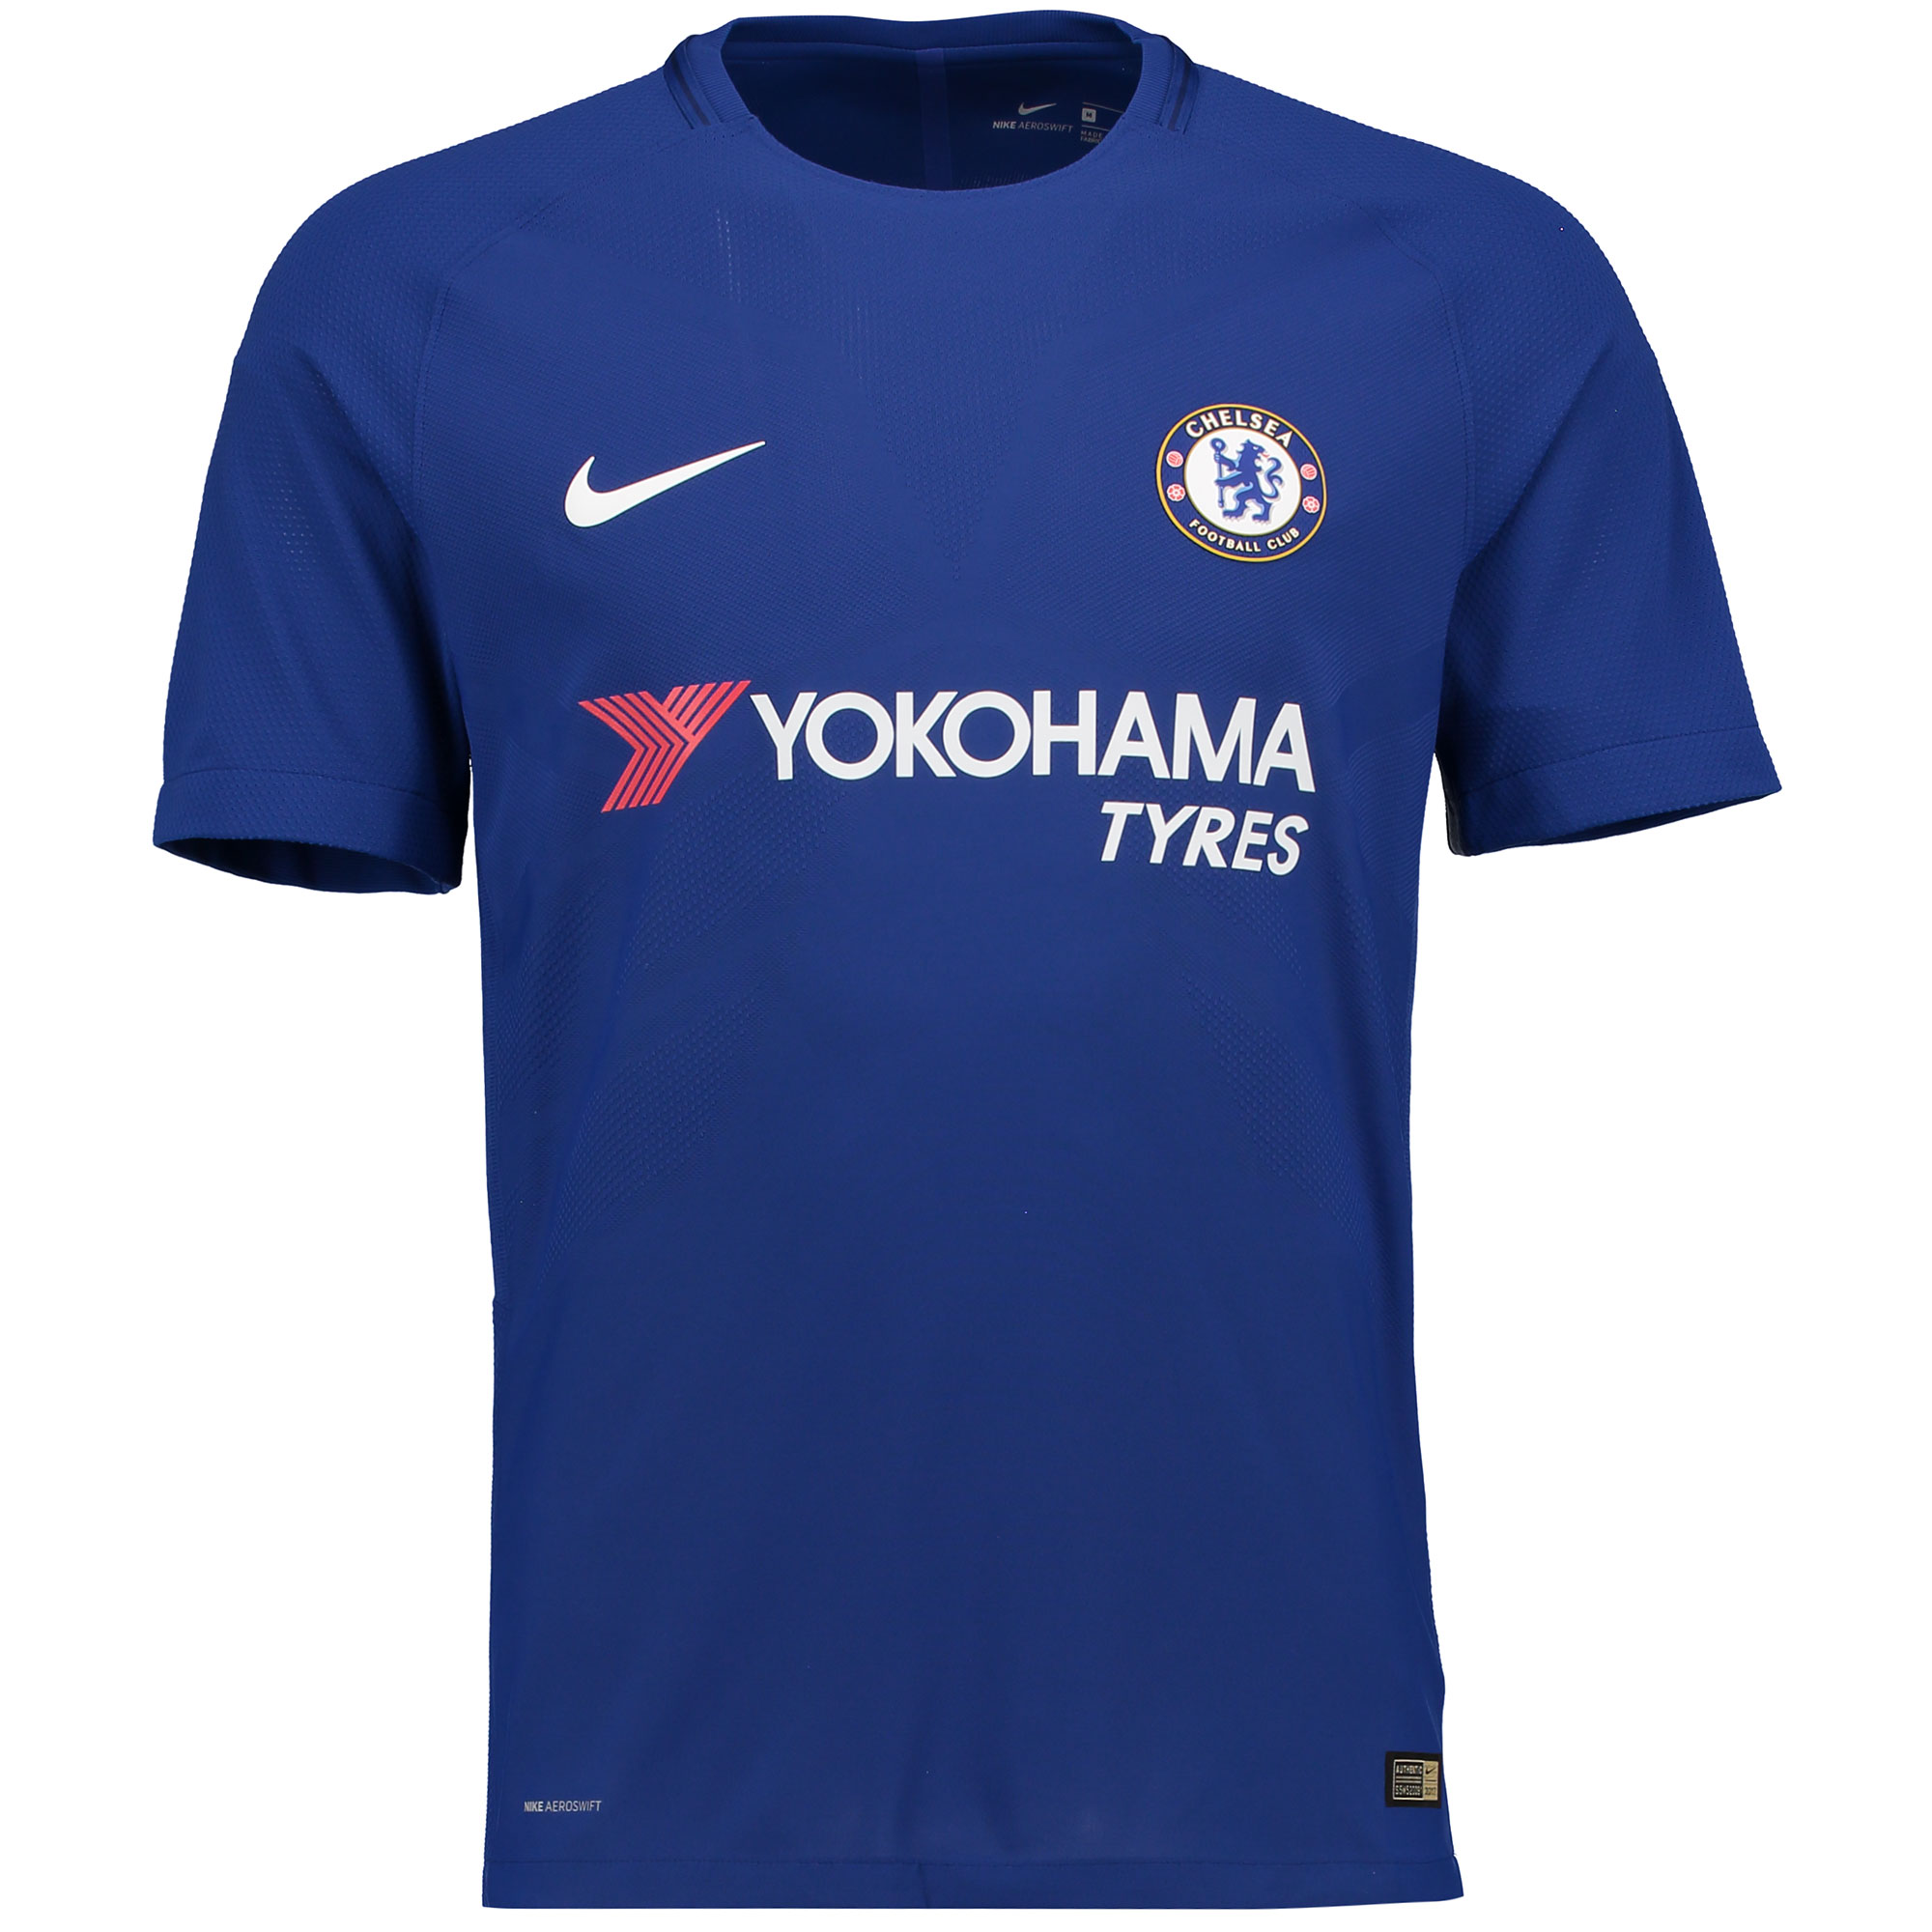 36e779609 ... Click to enlarge image chelsea 17 18 nike home kit a.jpg ...